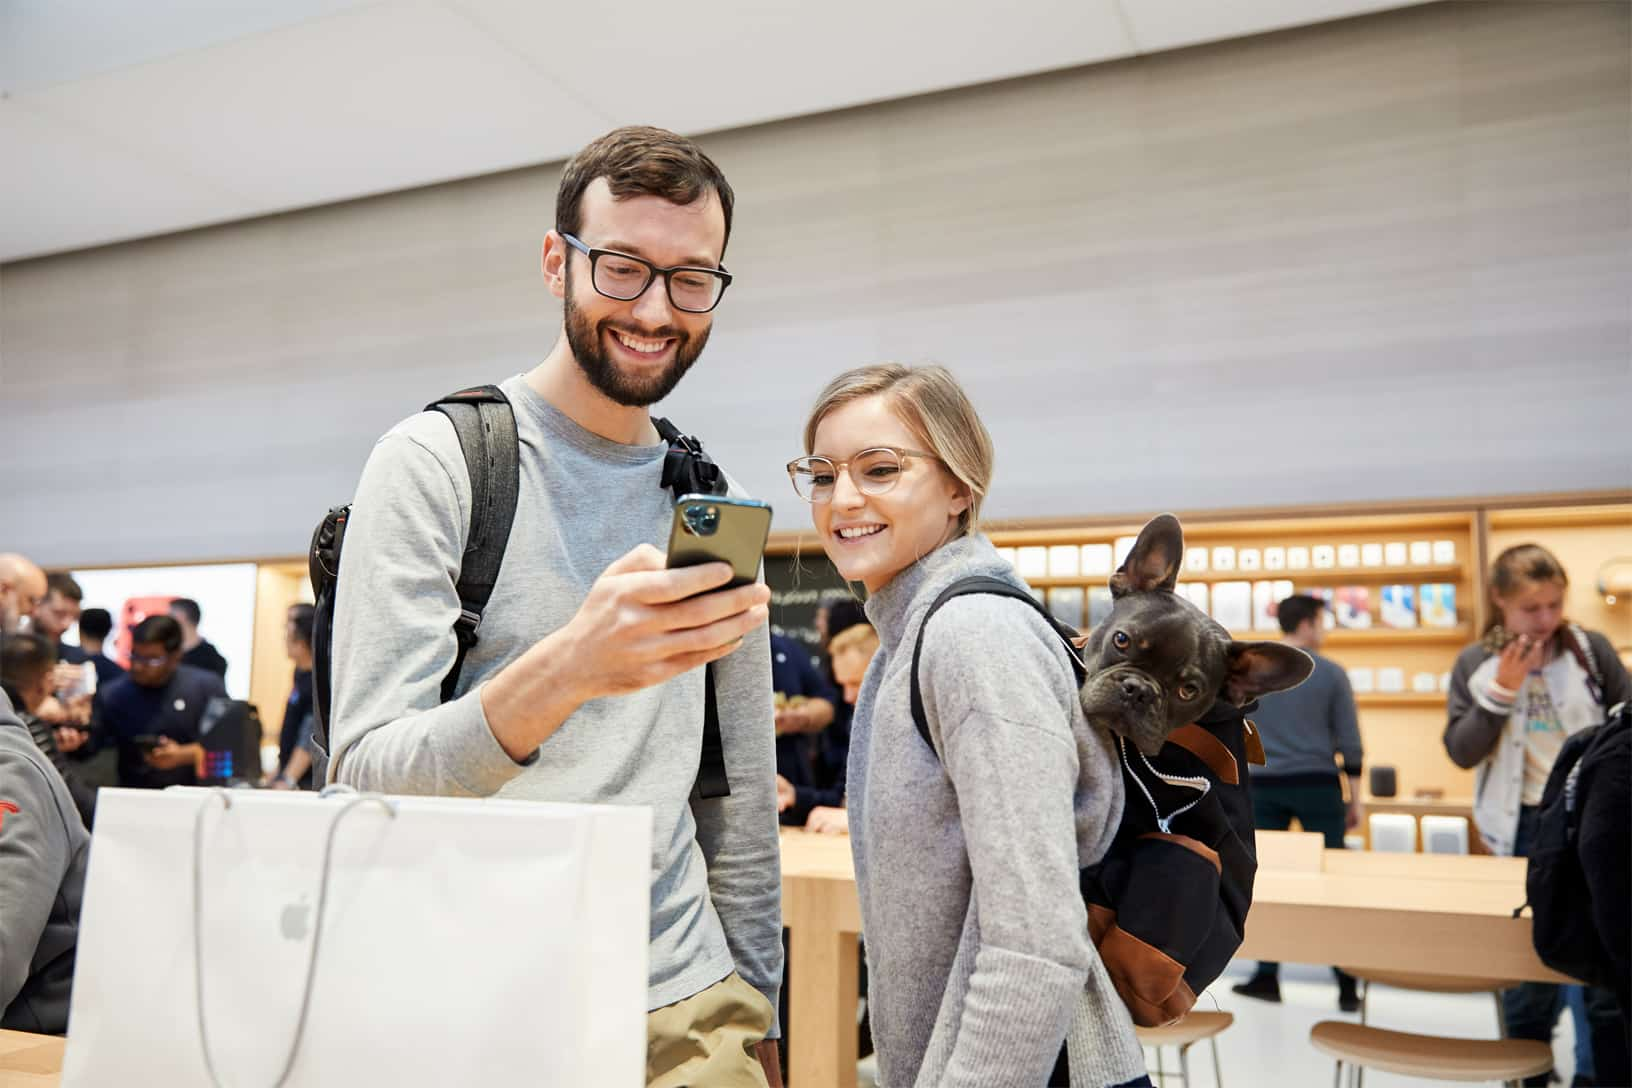 Apple Iphone 11 Pro Apple Watch 5 Availability Ny Guests With Midnight Green Iphone 11 Pro 092019